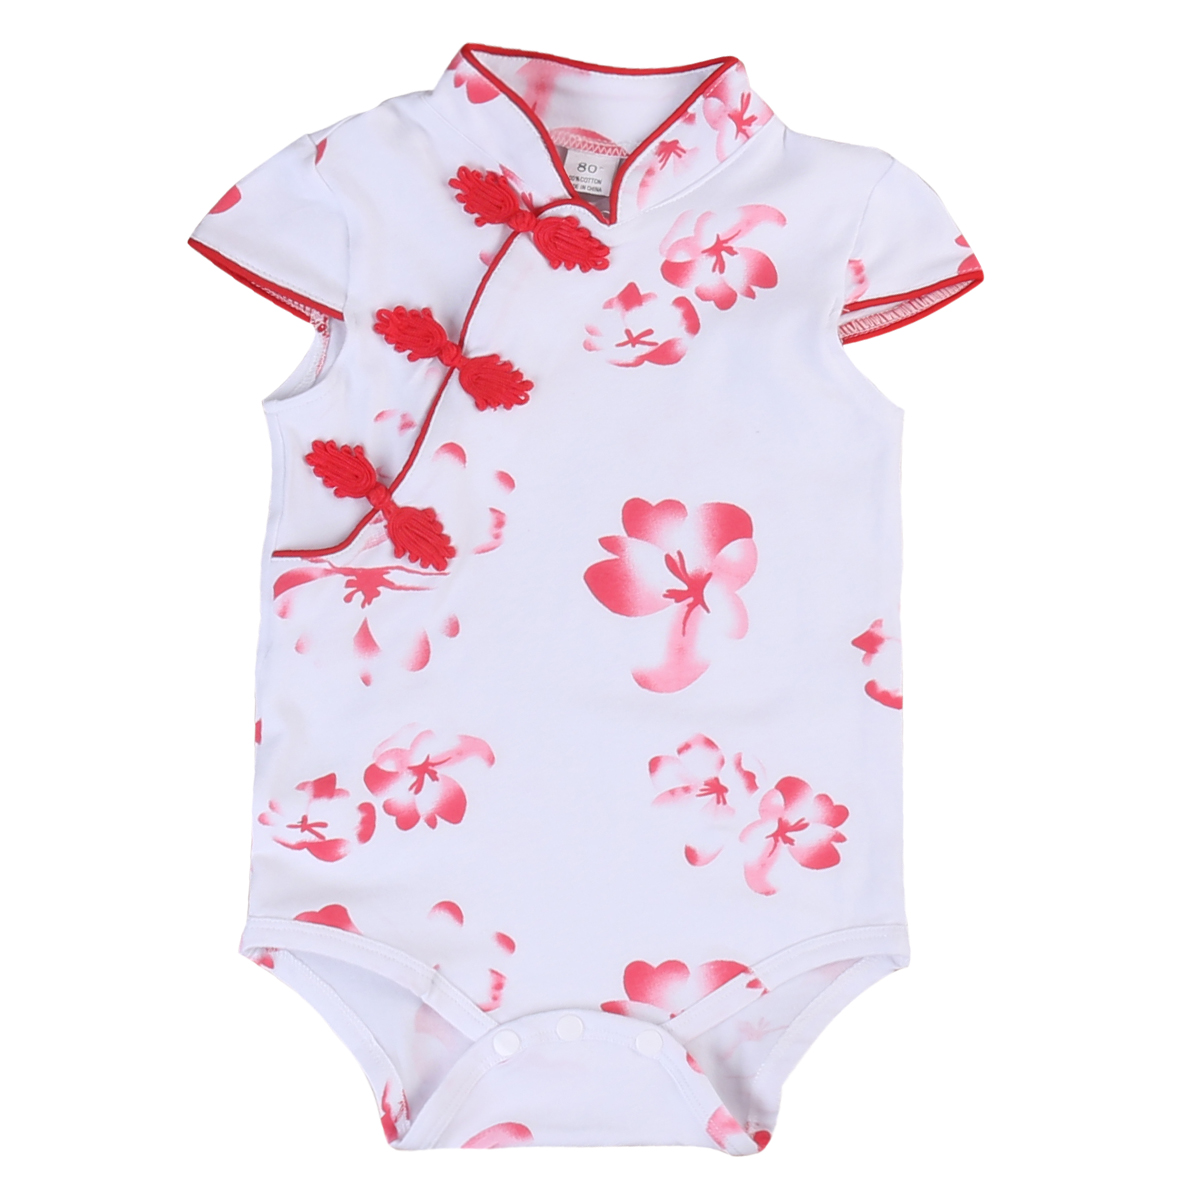 Aliexpress.com  Buy Summer 2017 Newborn Infant Baby Girl Floral cheongsam Romper Jumpsuit ...